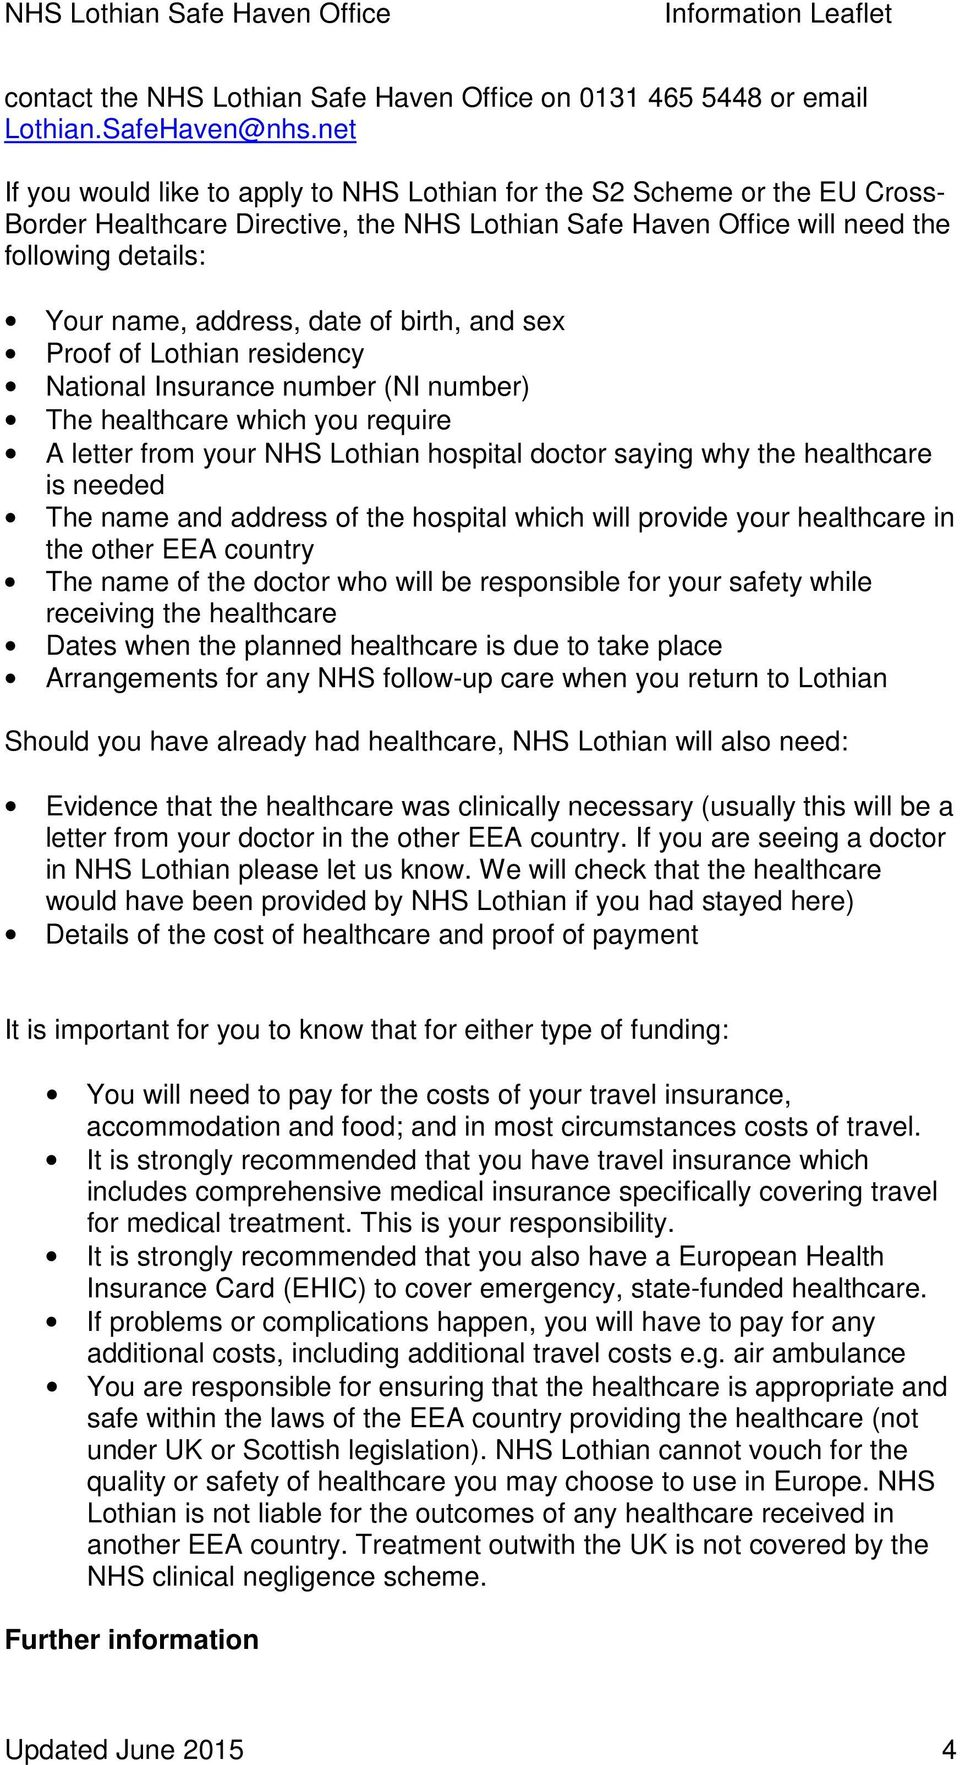 date of birth, and sex Proof of Lothian residency National Insurance number (NI number) The healthcare which you require A letter from your NHS Lothian hospital doctor saying why the healthcare is